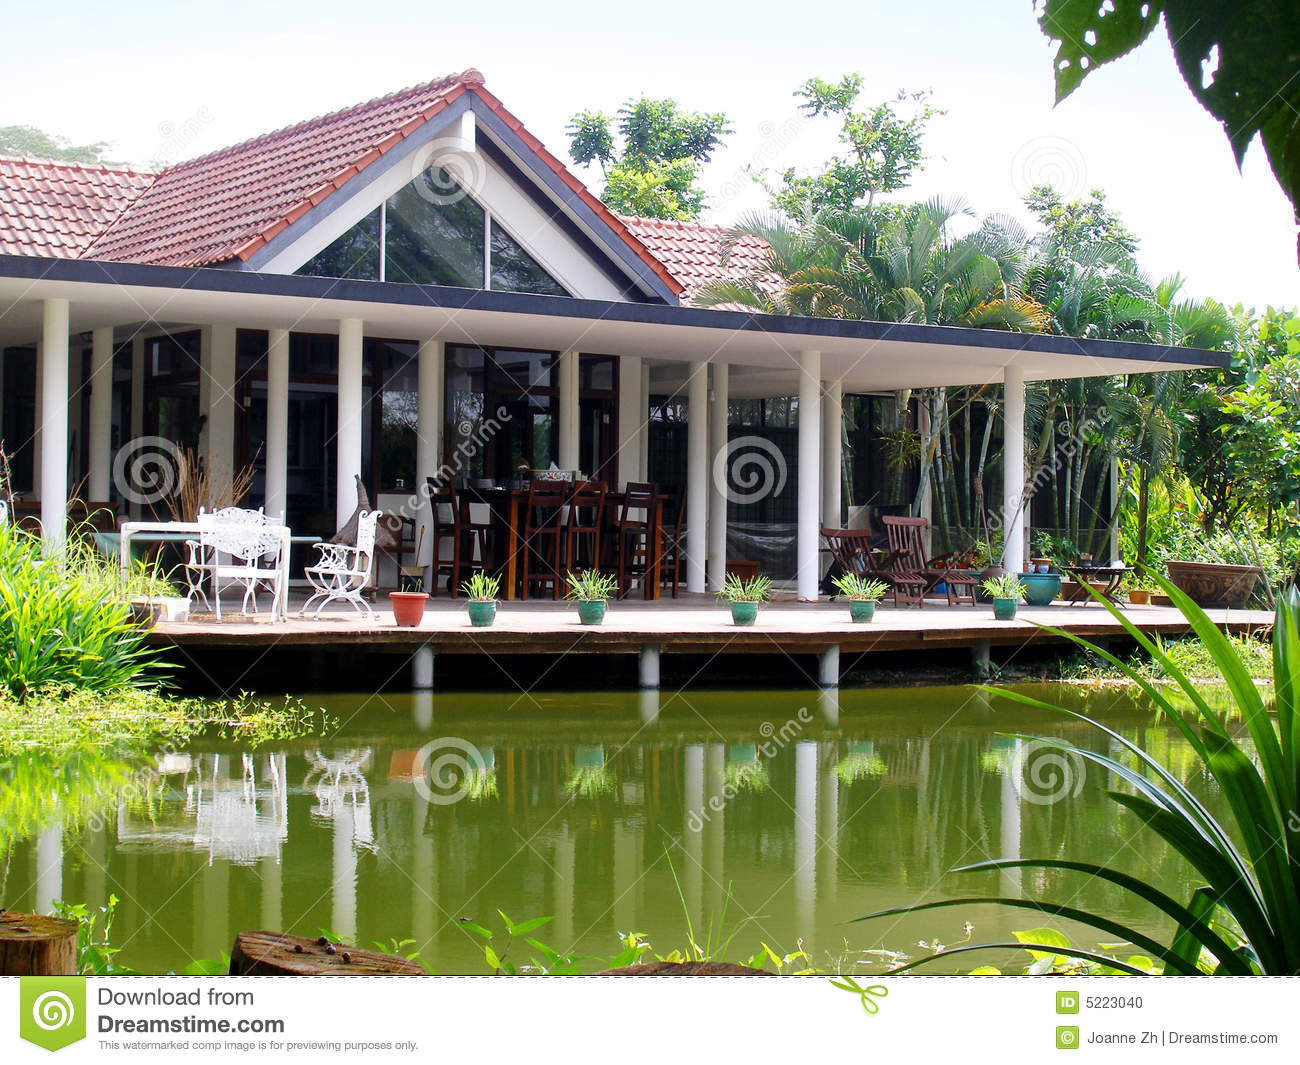 Tropical house veranda natural pond stock photo image for Homes with verandahs all around